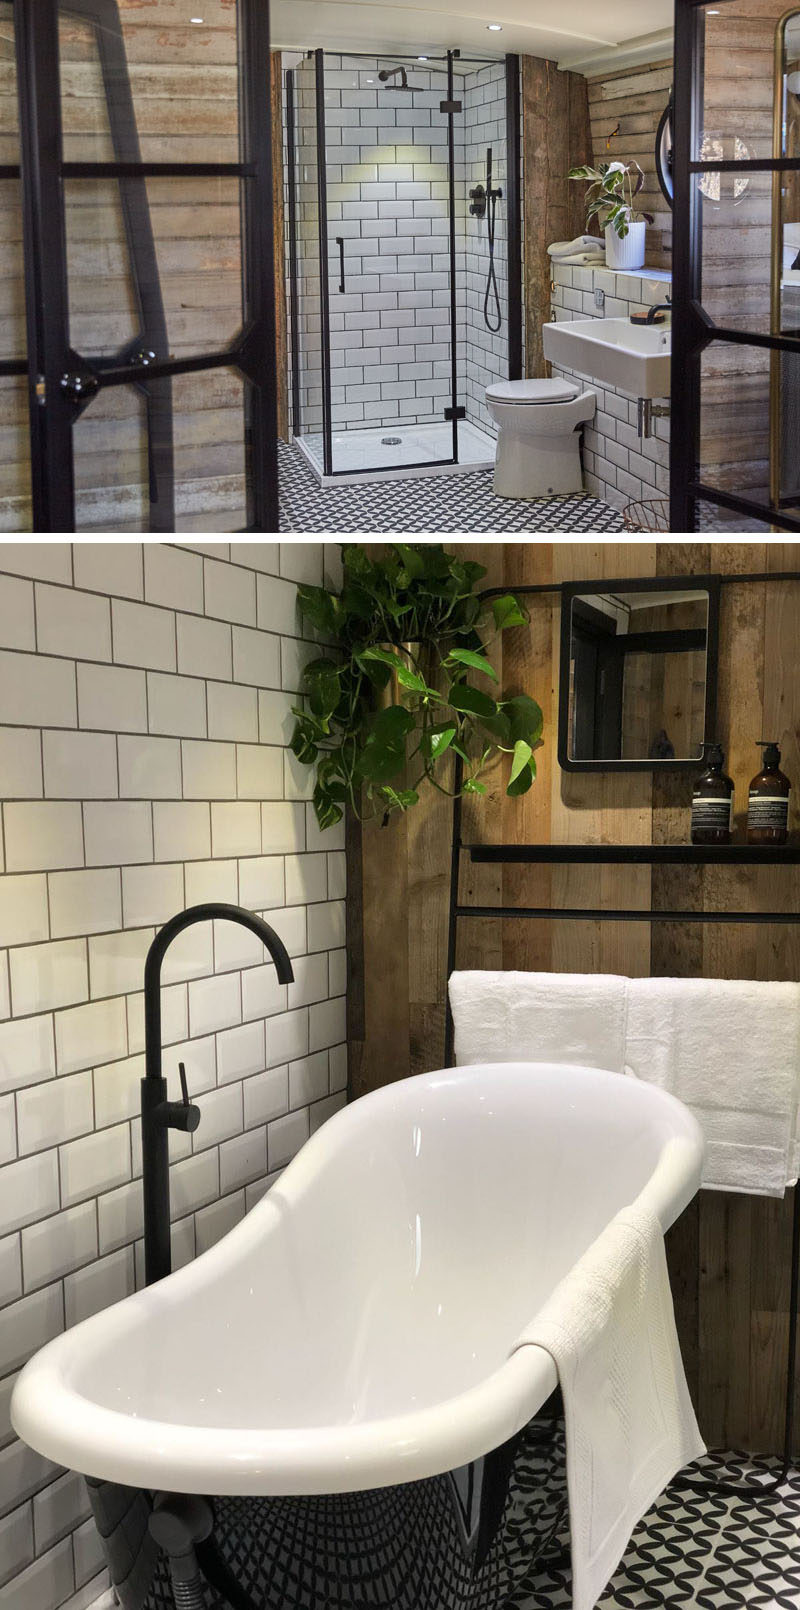 5b5a955b1a3a0london-boathouse-design-bathroom-250718-1222-08-800x1610